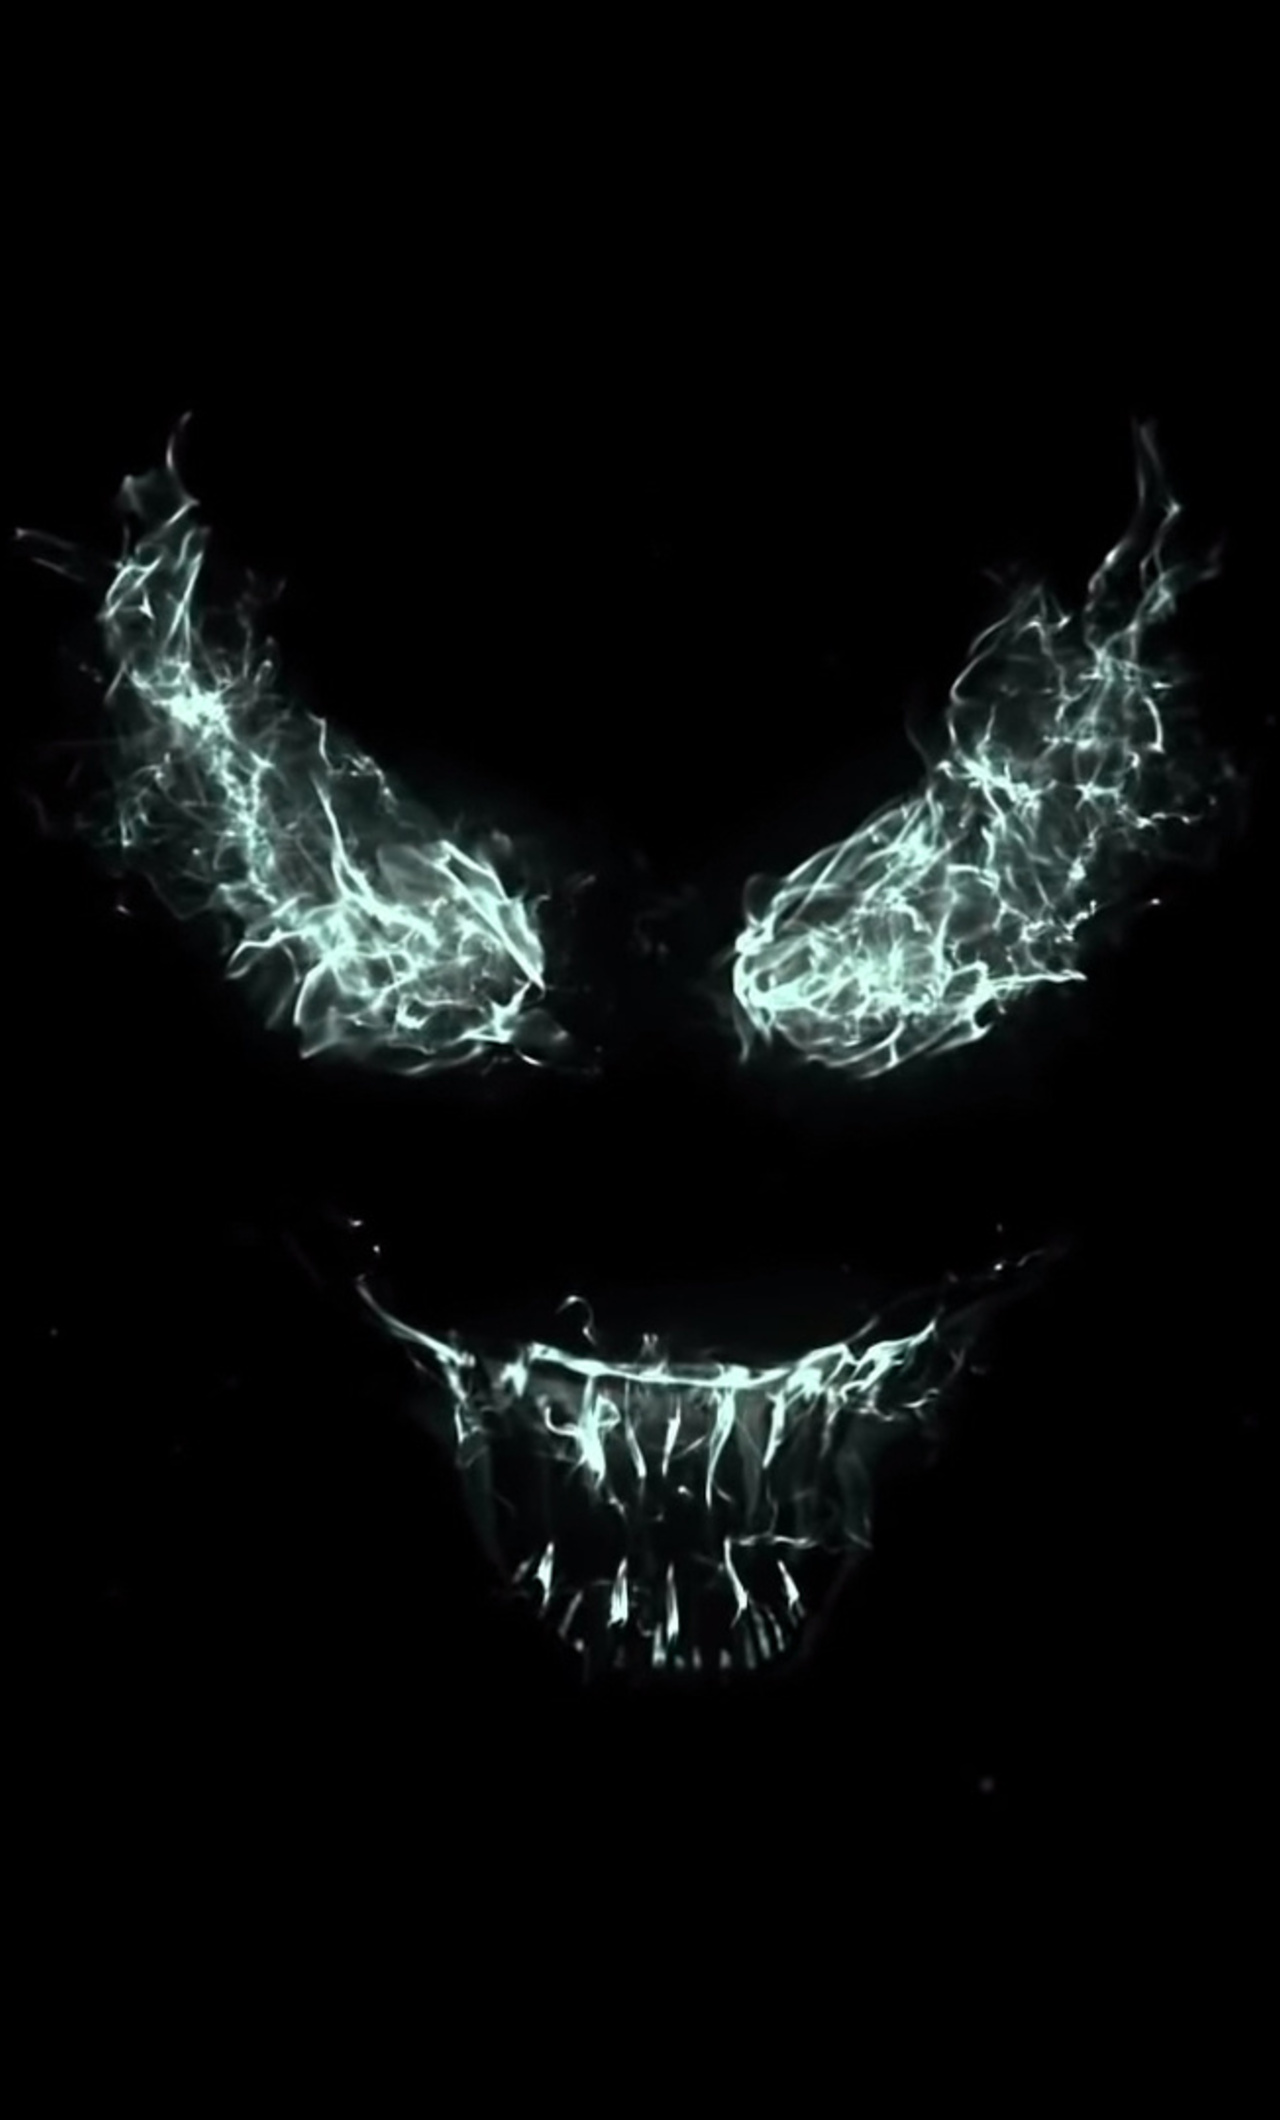 1280x2120 Venom Movie 2018 Iphone 6 Hd 4k Wallpapers Images Backgrounds Photos And Pictures